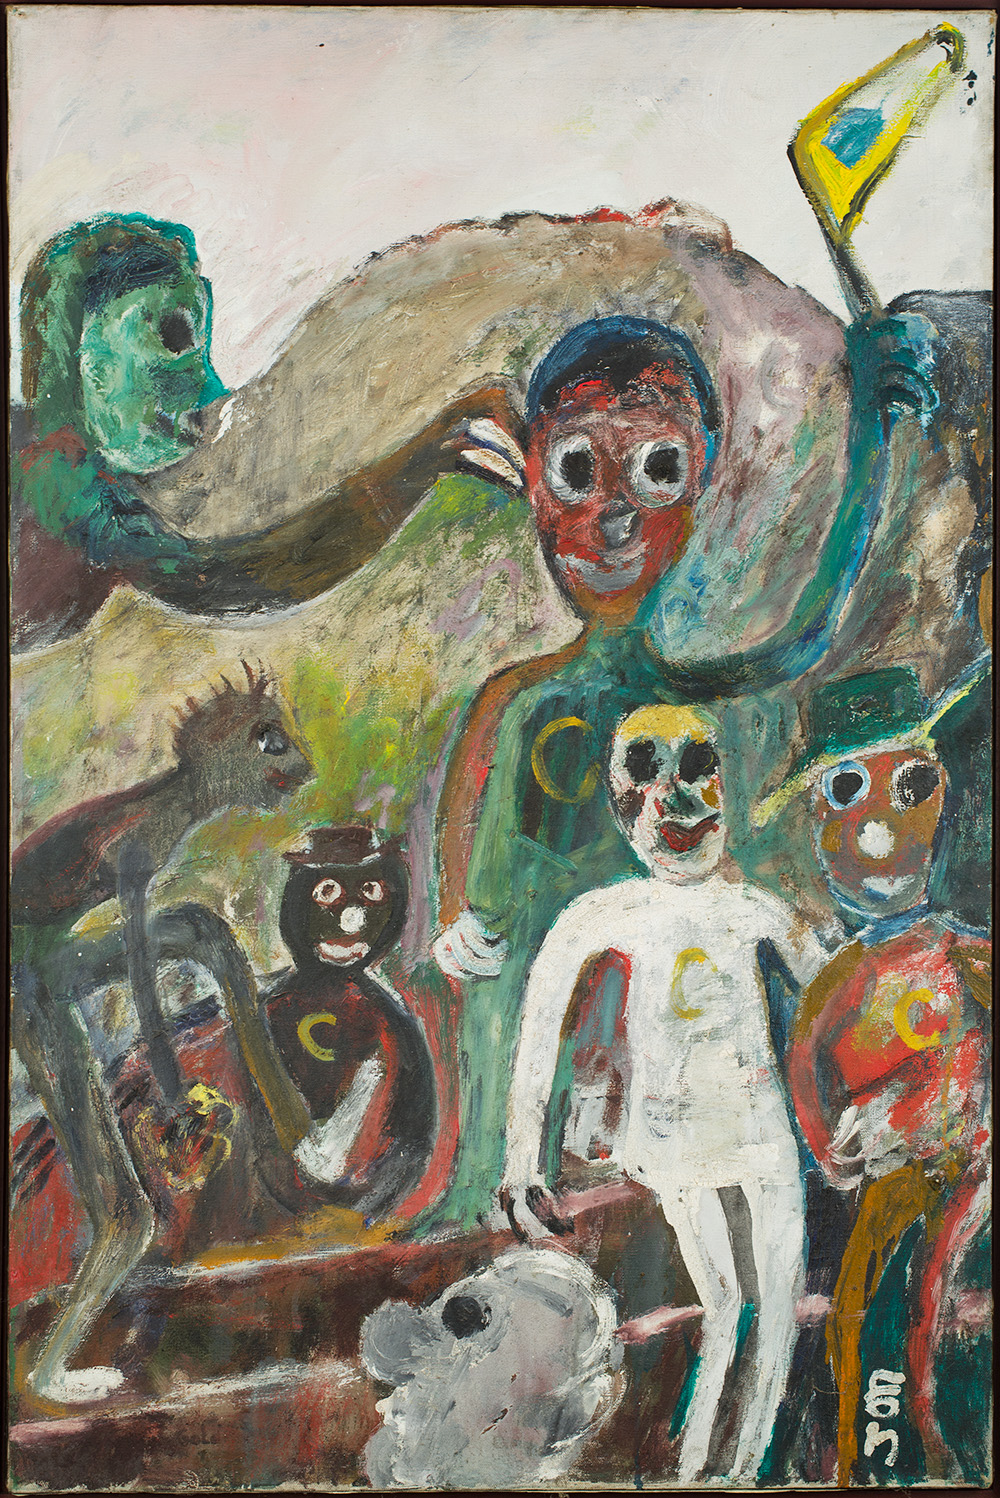 Jon Serl    Behind The Game  , 1988 Oil on canvas 38 x 24 inches 96.5 x 61 cm SJ 497